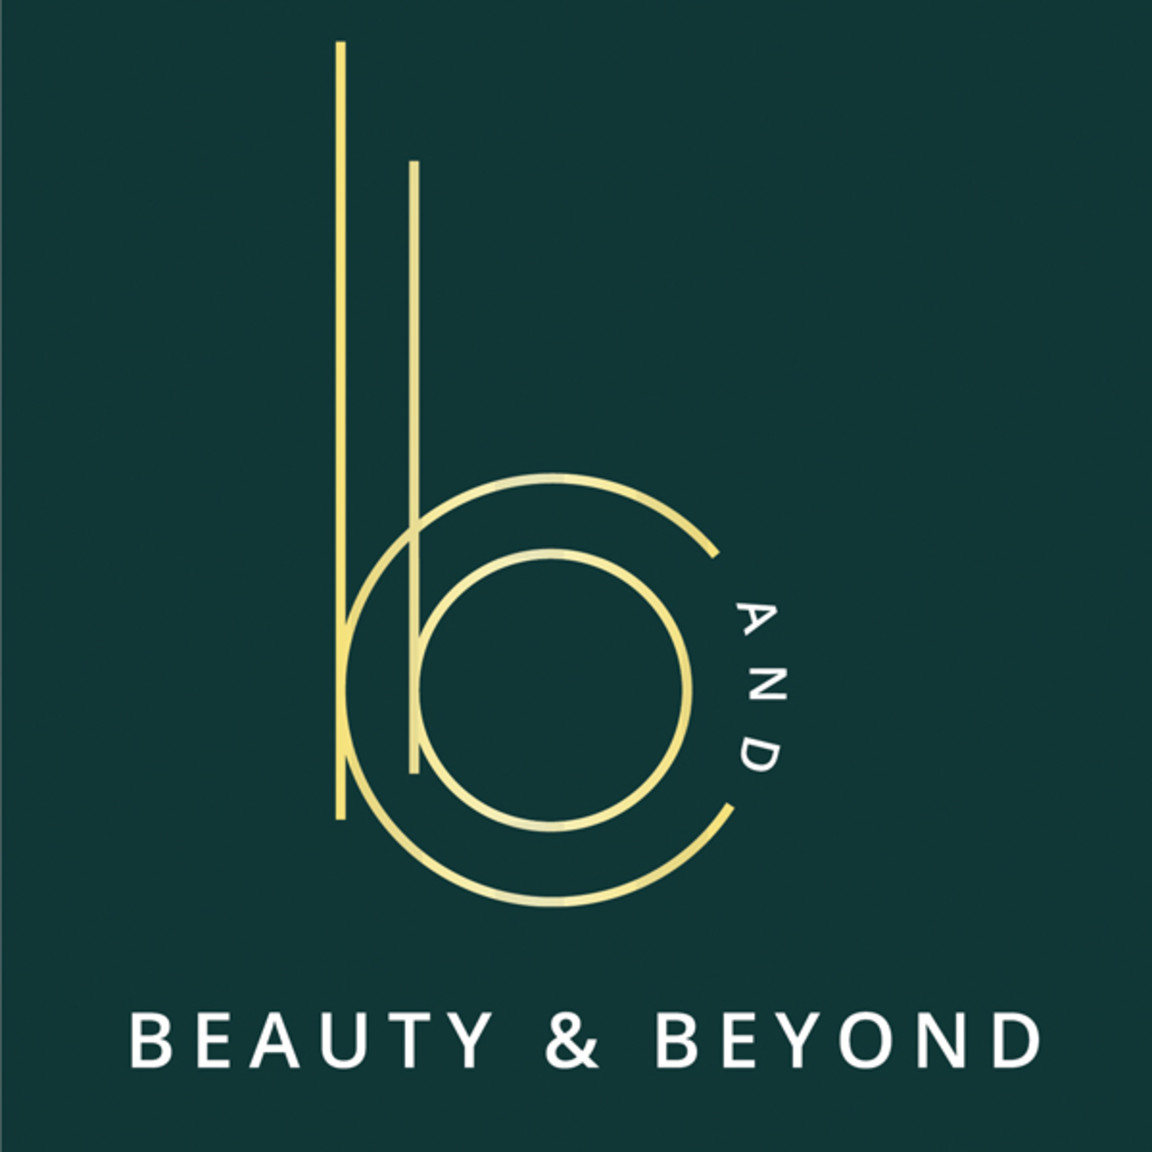 Beauty & Beyond at Westfield Newmarket